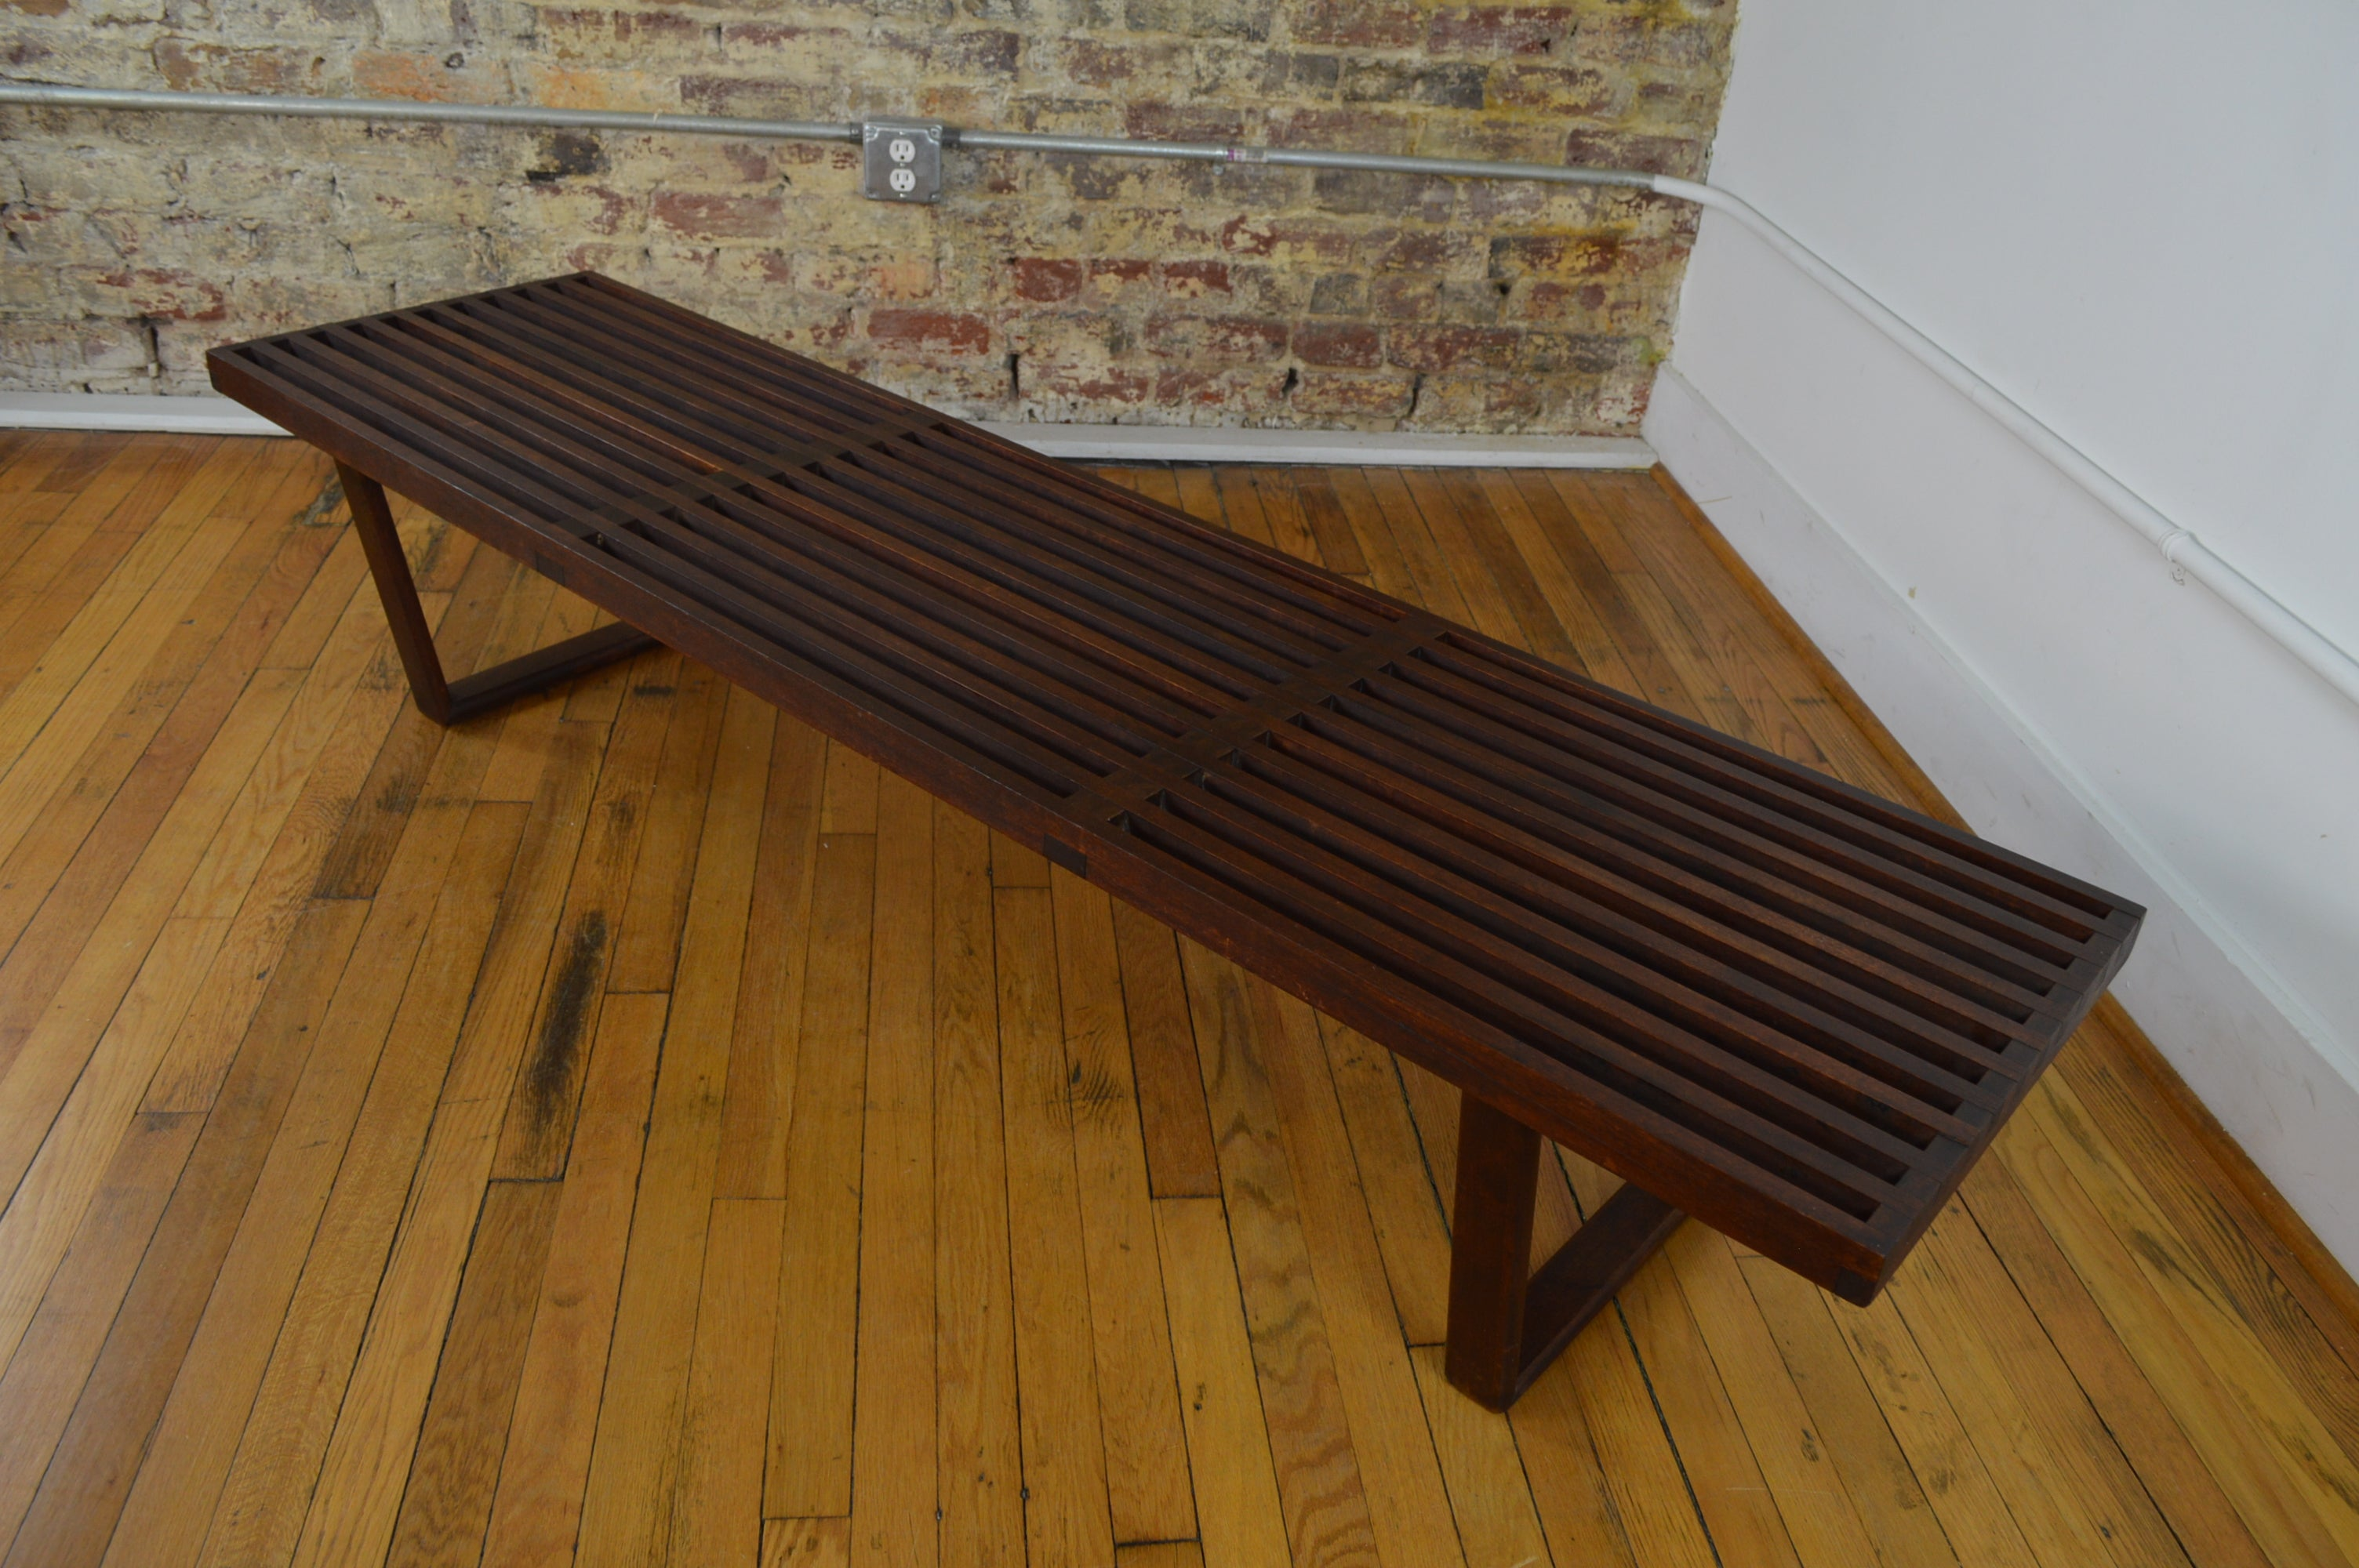 Enjoyable Early George Nelson Bench Coffee Table Theyellowbook Wood Chair Design Ideas Theyellowbookinfo